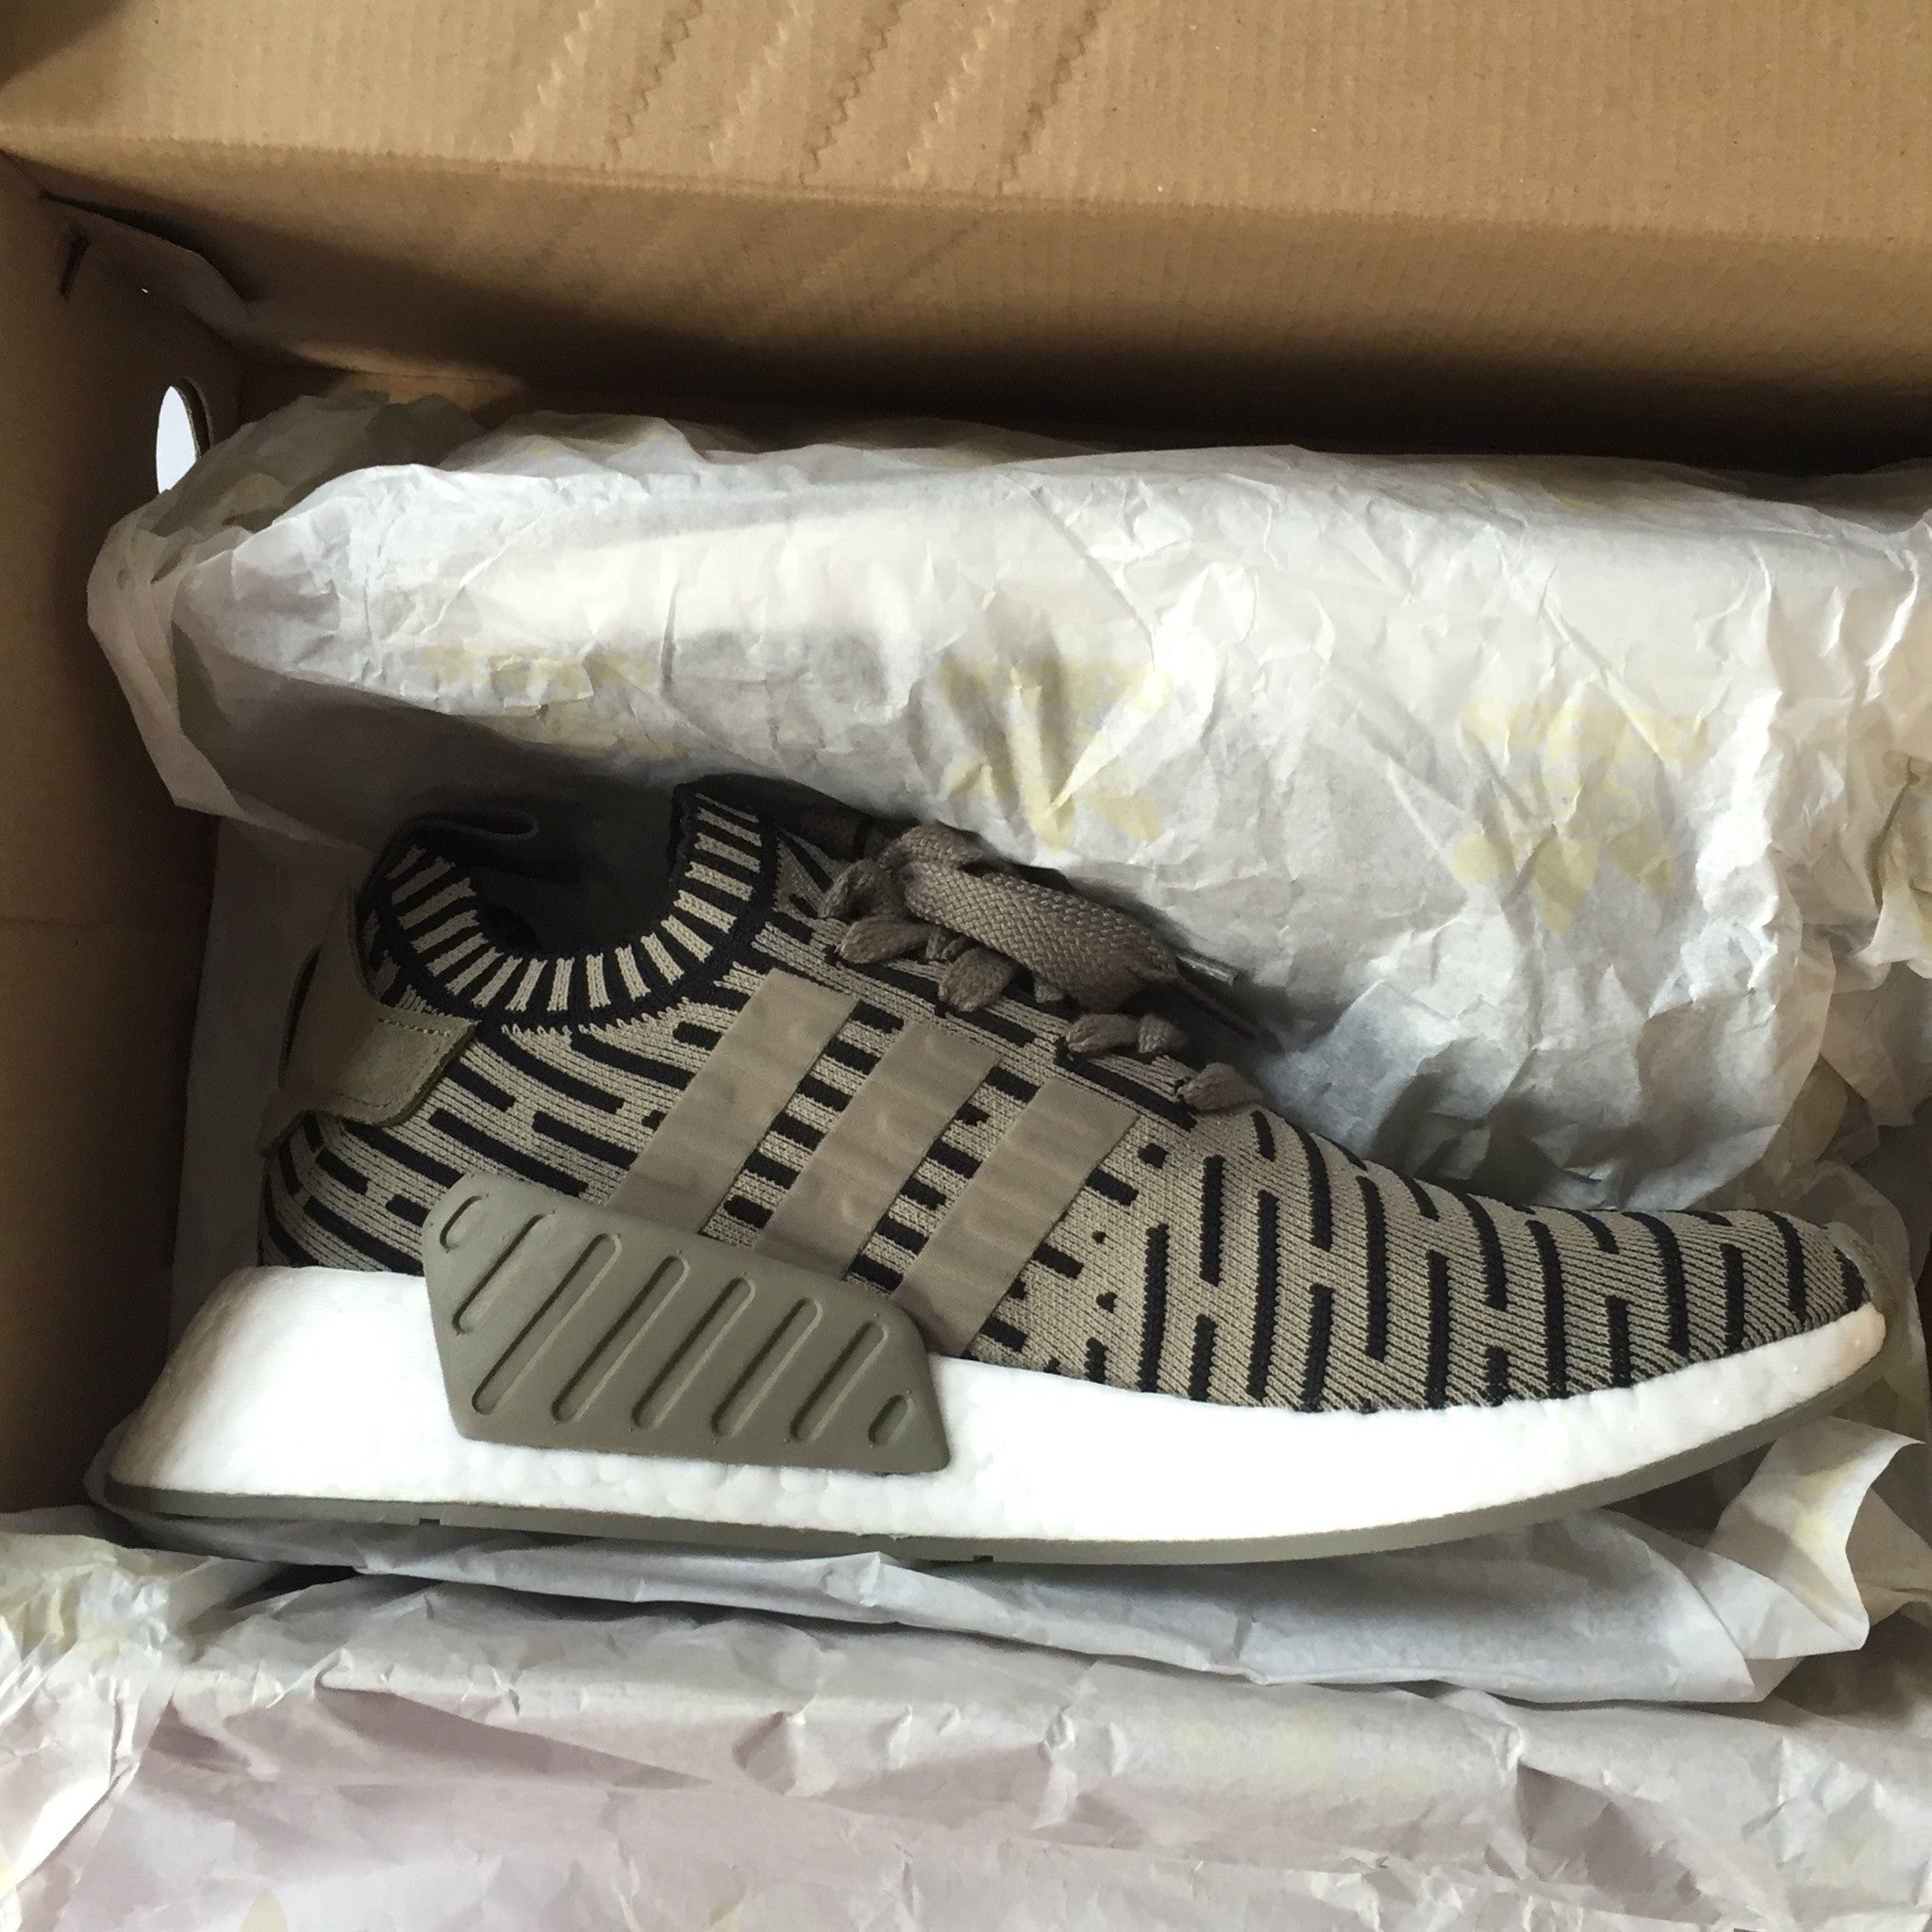 def23bb44715e Adidas - Men s NMD R2 PK Olive Green Nomad Primeknit Boost Sneakers ...